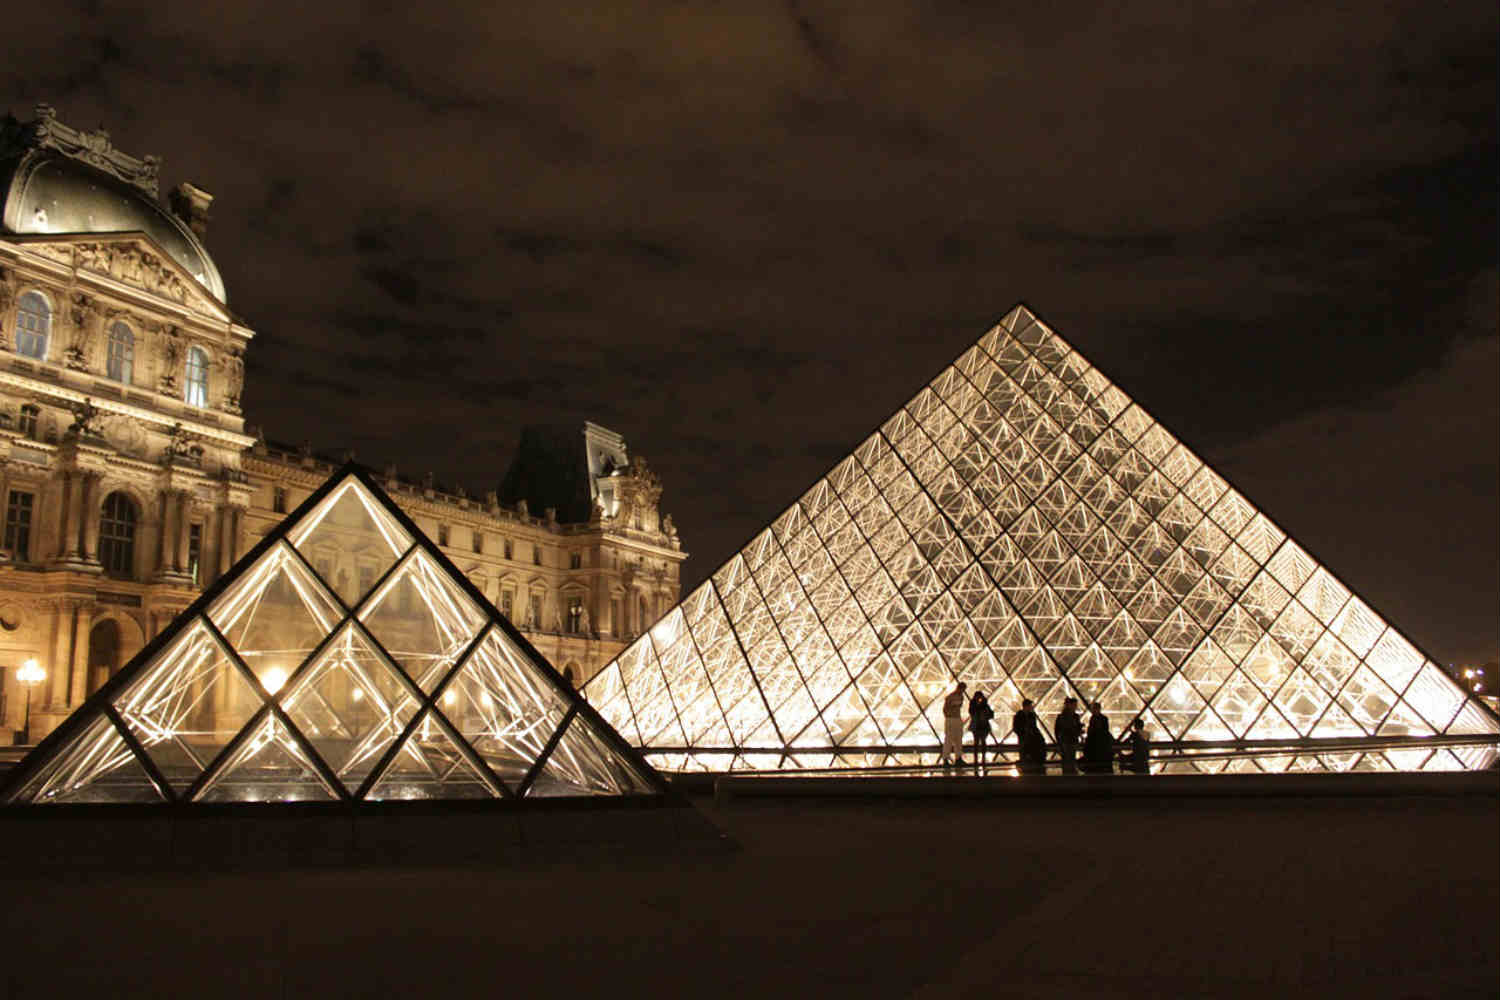 the louvre glass pyramid at night